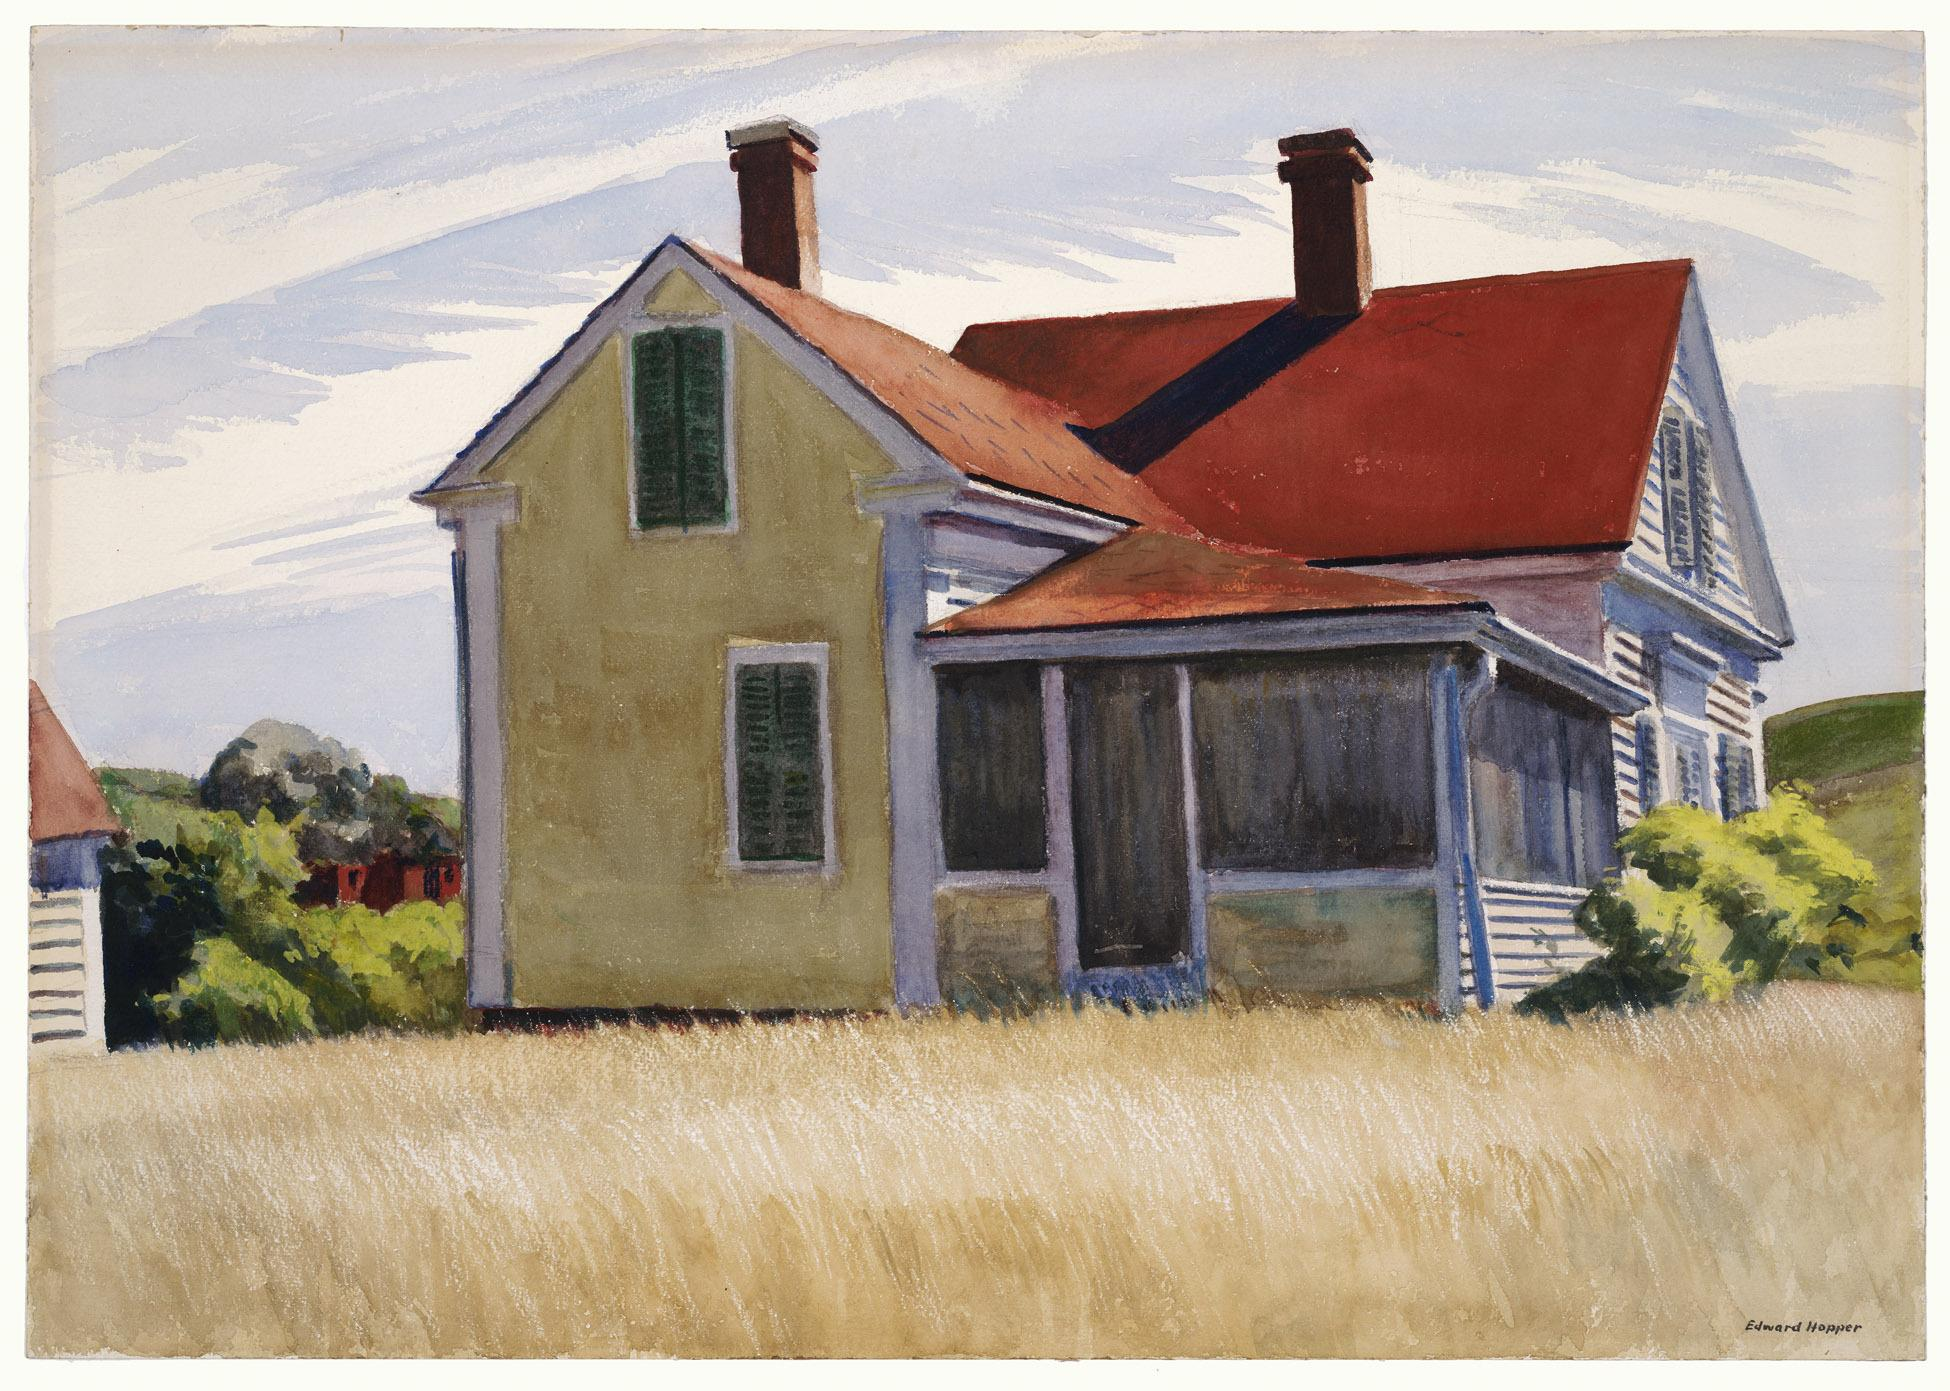 Connecticut watercolor artists directory - Edward Hopper 1882 1967 Marshall S House 1932 Opaque And Transparent Watercolor Over Graphite On Wove Paper Wadsworth Atheneum Museum Of Art Hartford